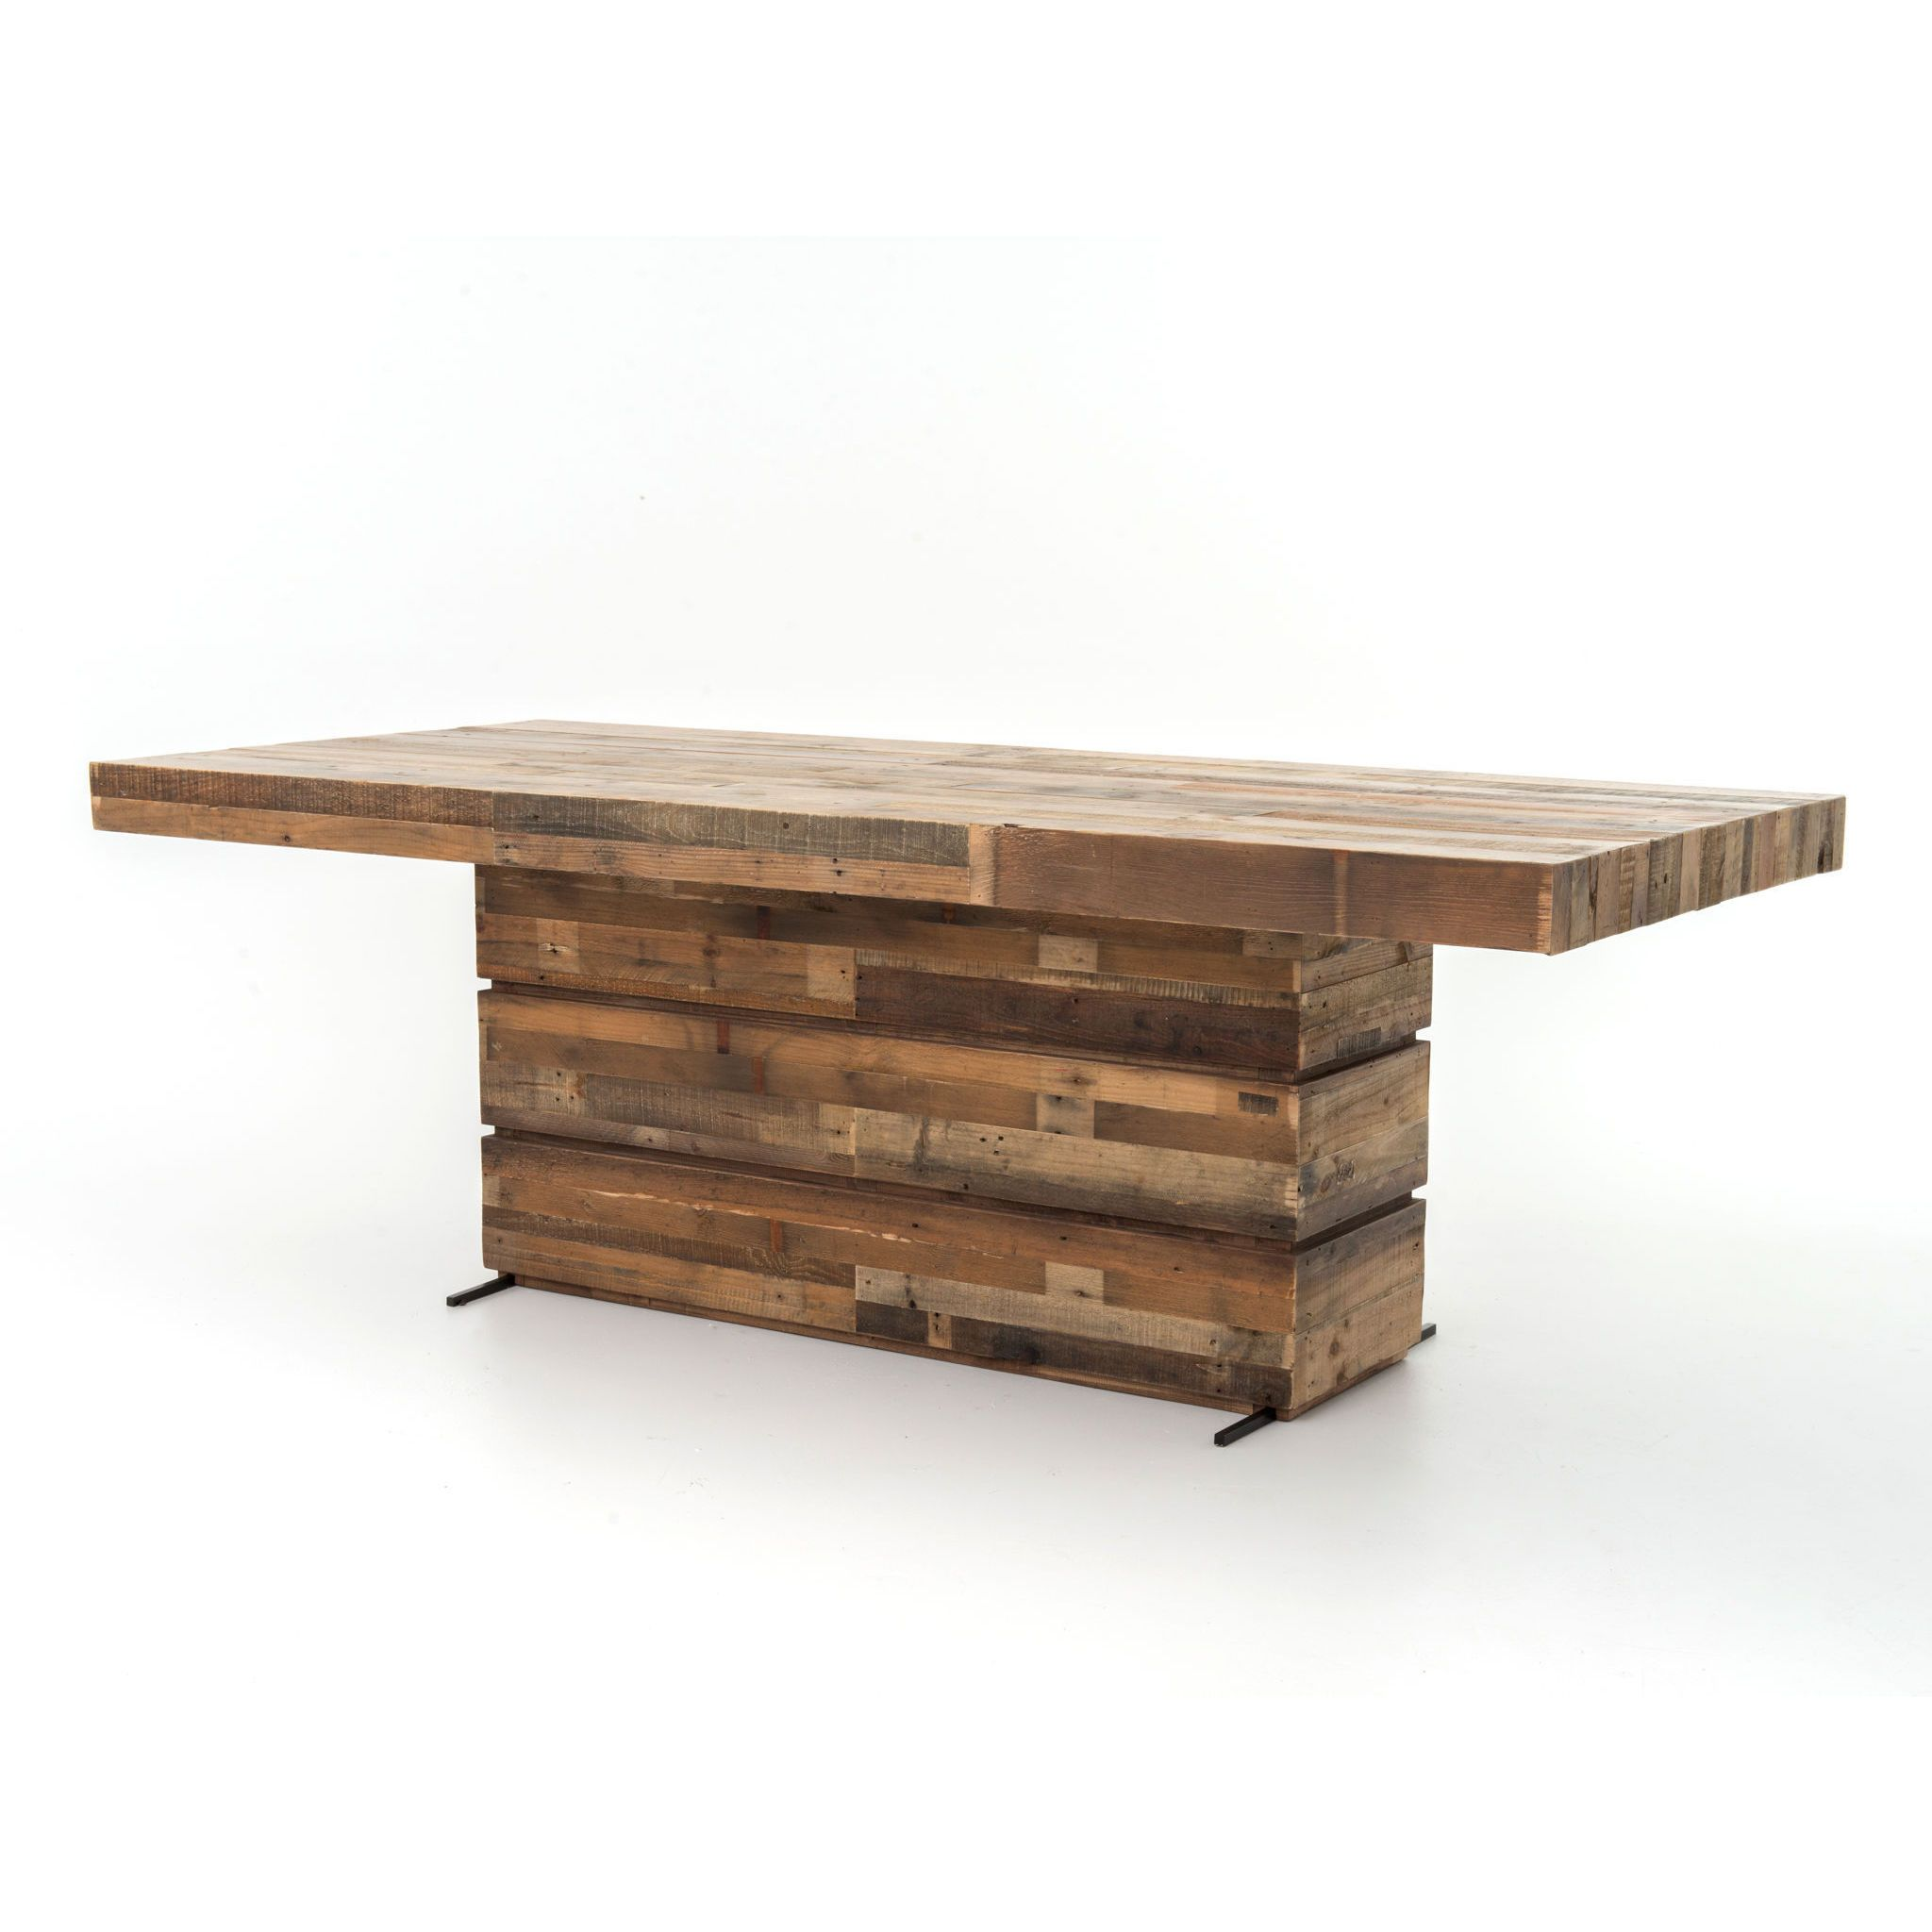 his 89 inch Dining Room Table exposes the knots and natural imperfections that make each unique and subtly one of a kind ensuring no two pieces are ever like.